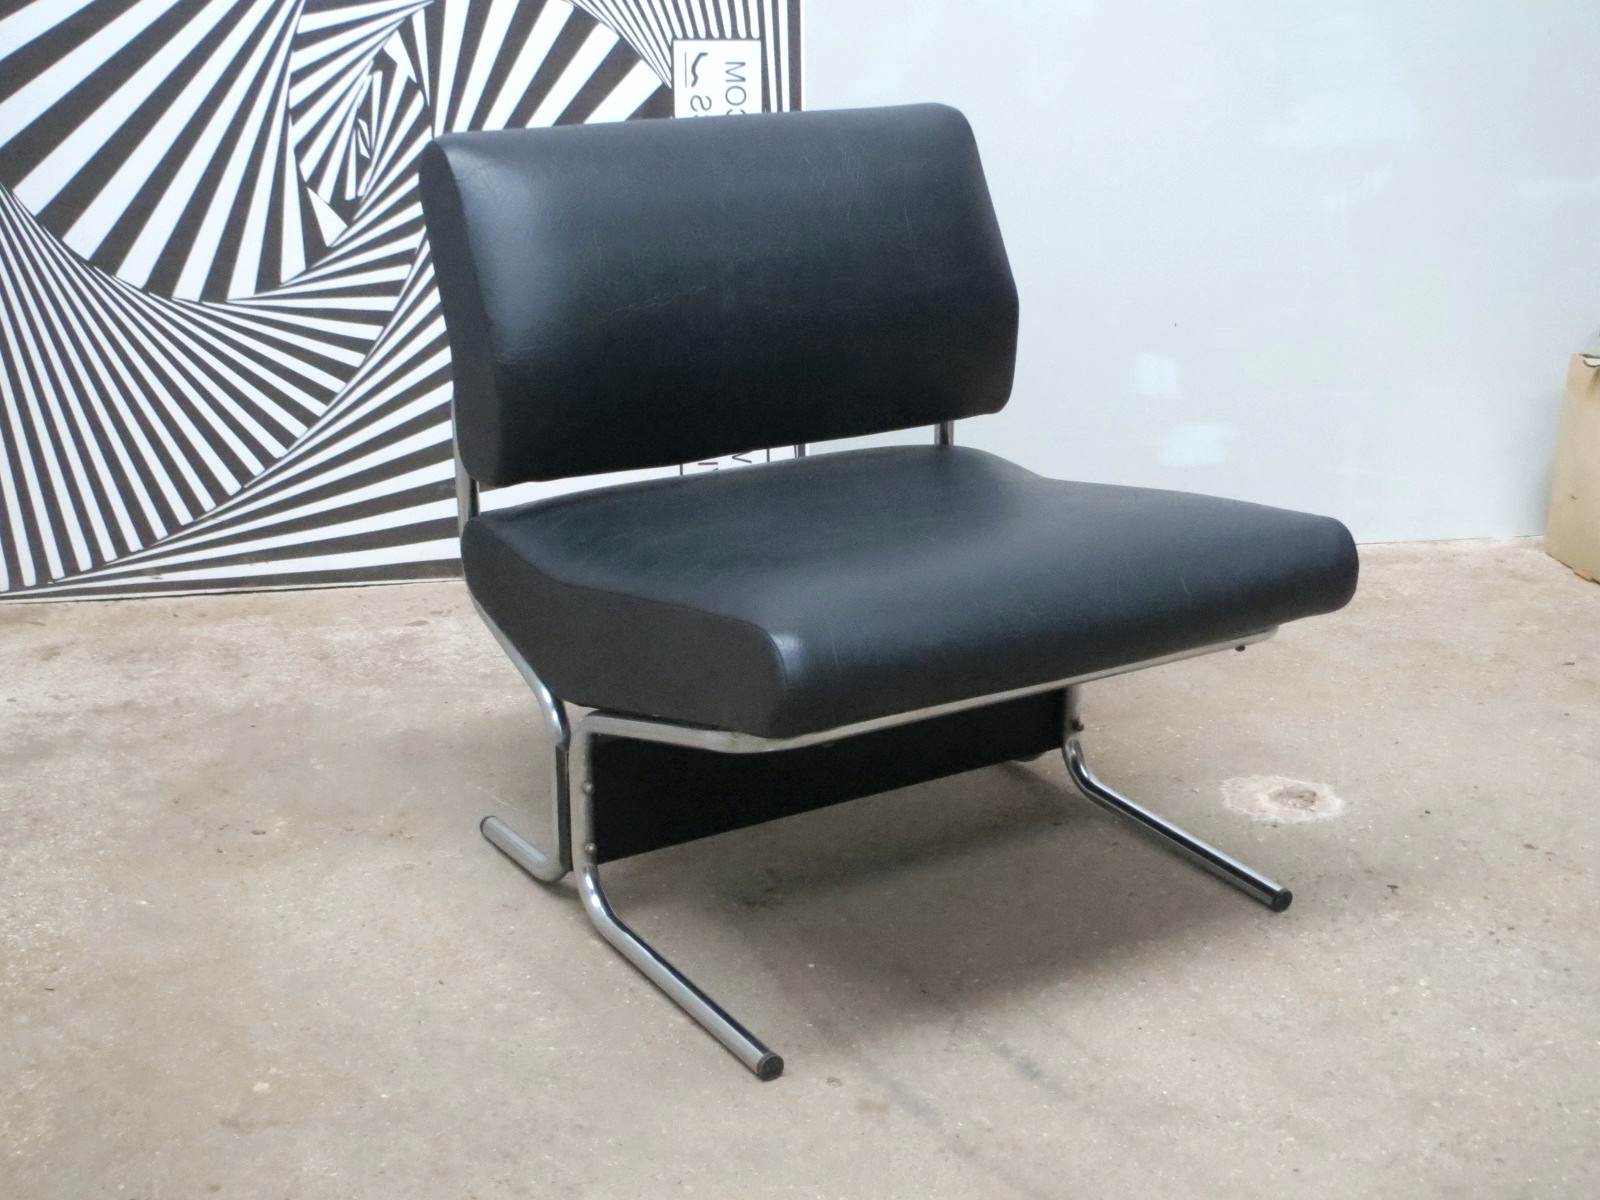 2018 Chaise Lounge Computer Chairs With Regard To Chaise Lounge Computer Chair • Lounge Chairs Ideas (View 2 of 15)